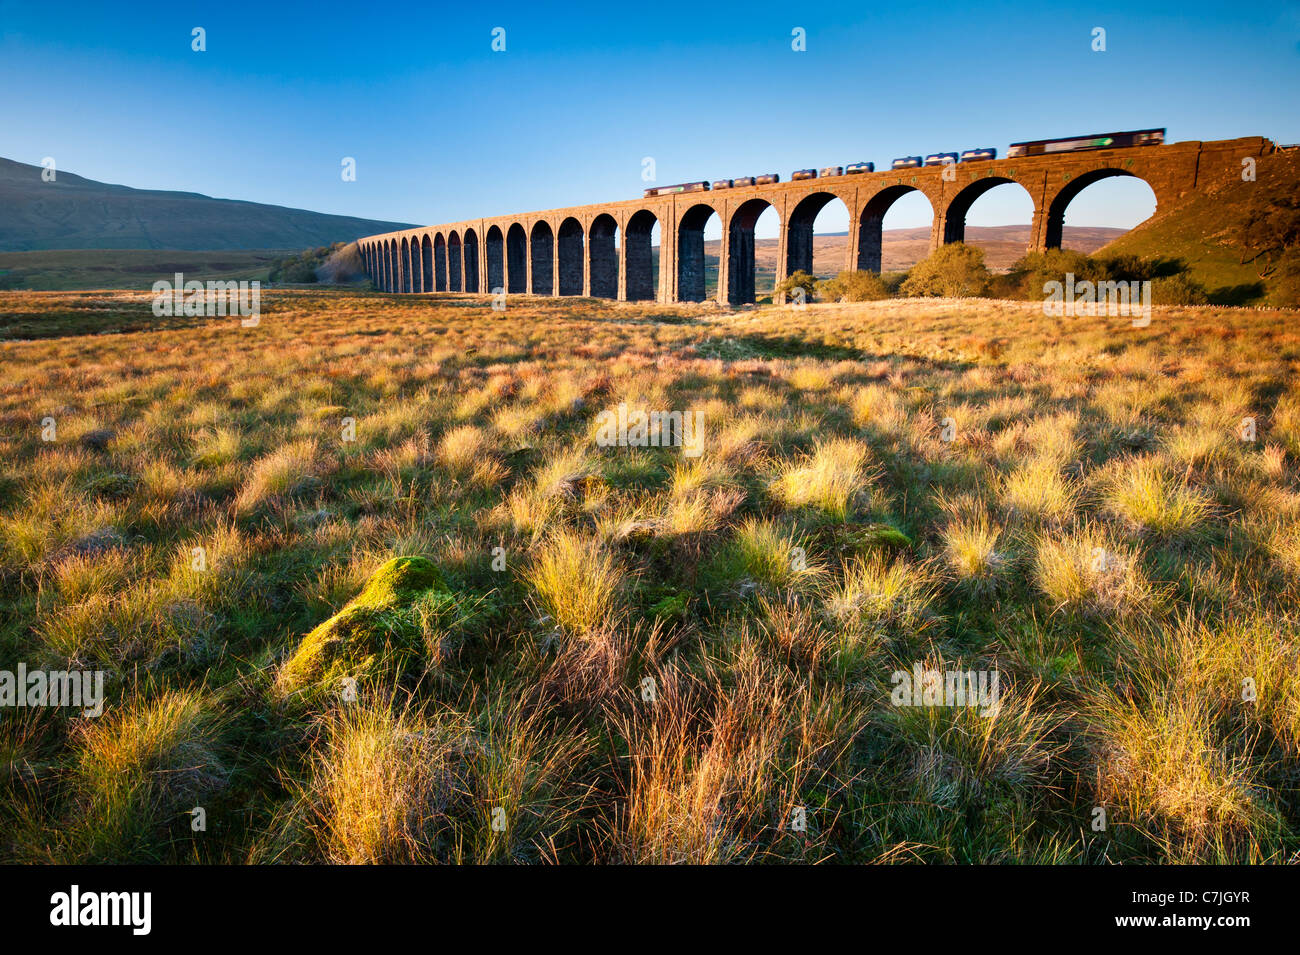 Fraight train crossing the Ribblehead Viaduct, Yorkshire Dales, England, UK - Stock Image